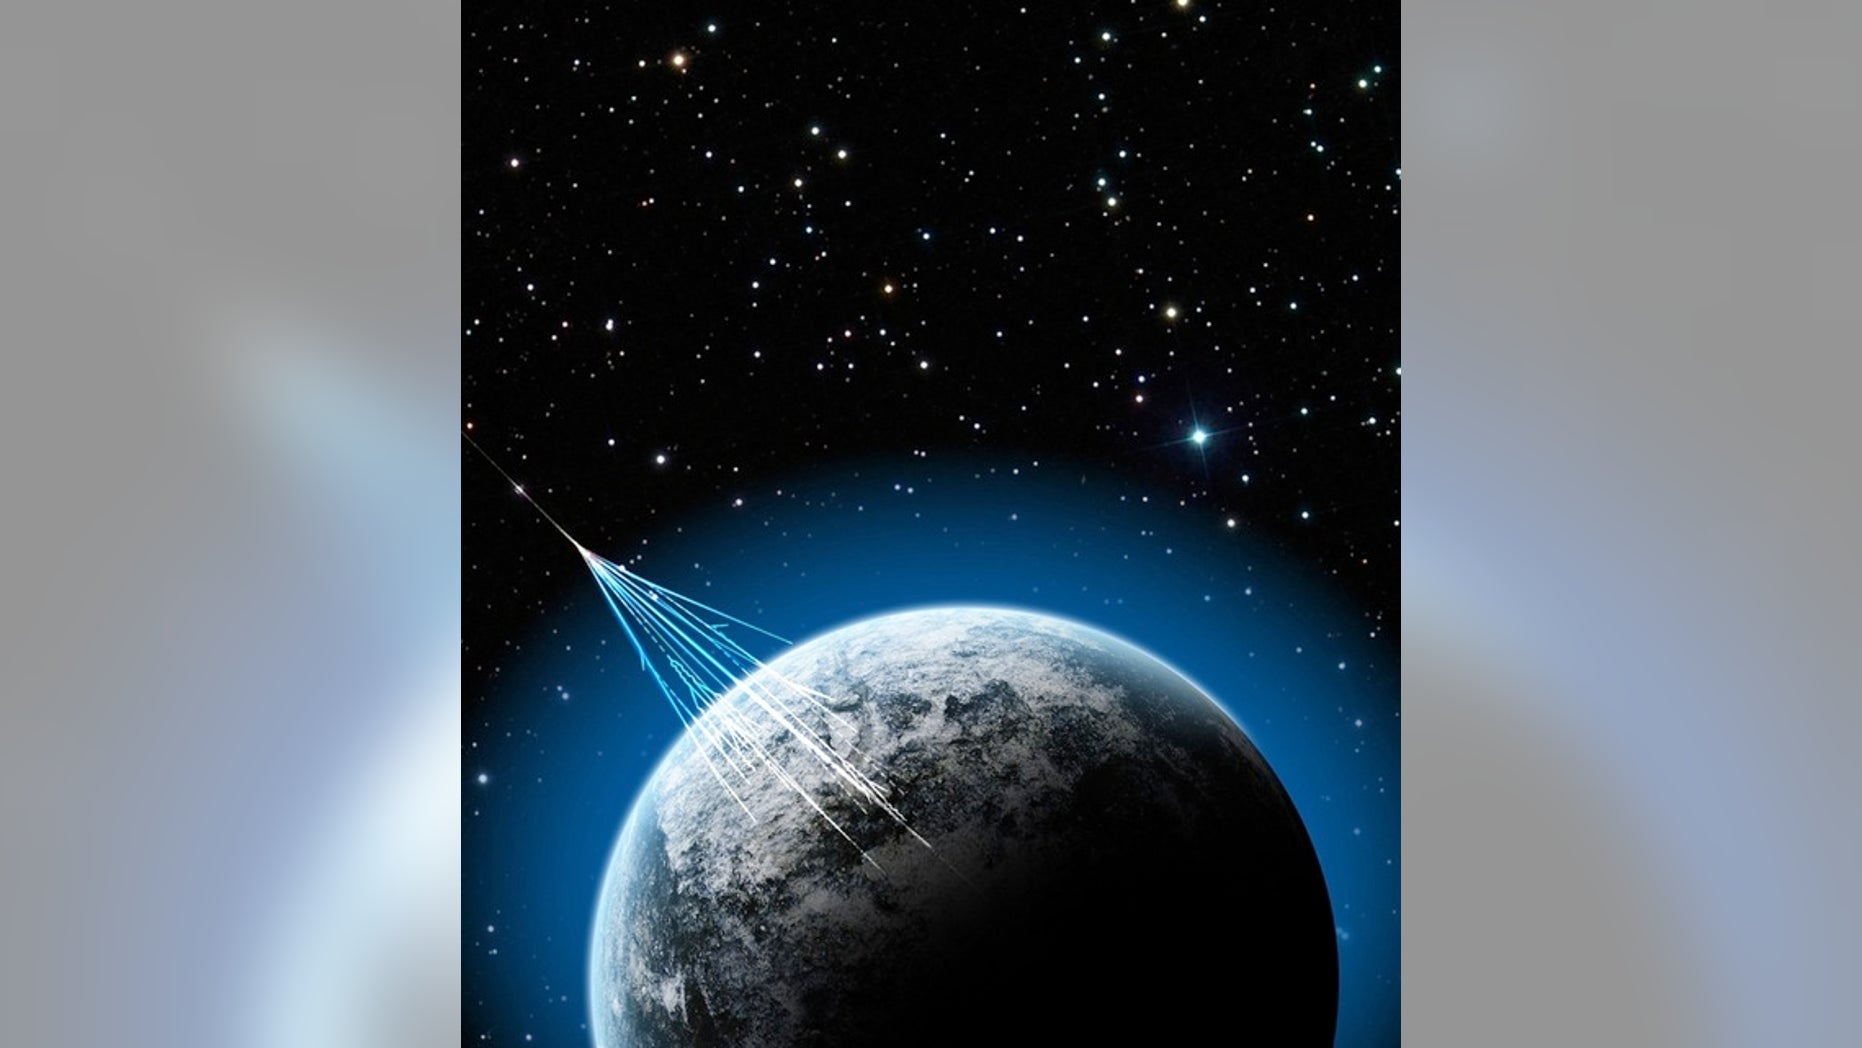 An illustration of high-energy cosmic rays penetrating the Earth's atmosphere.